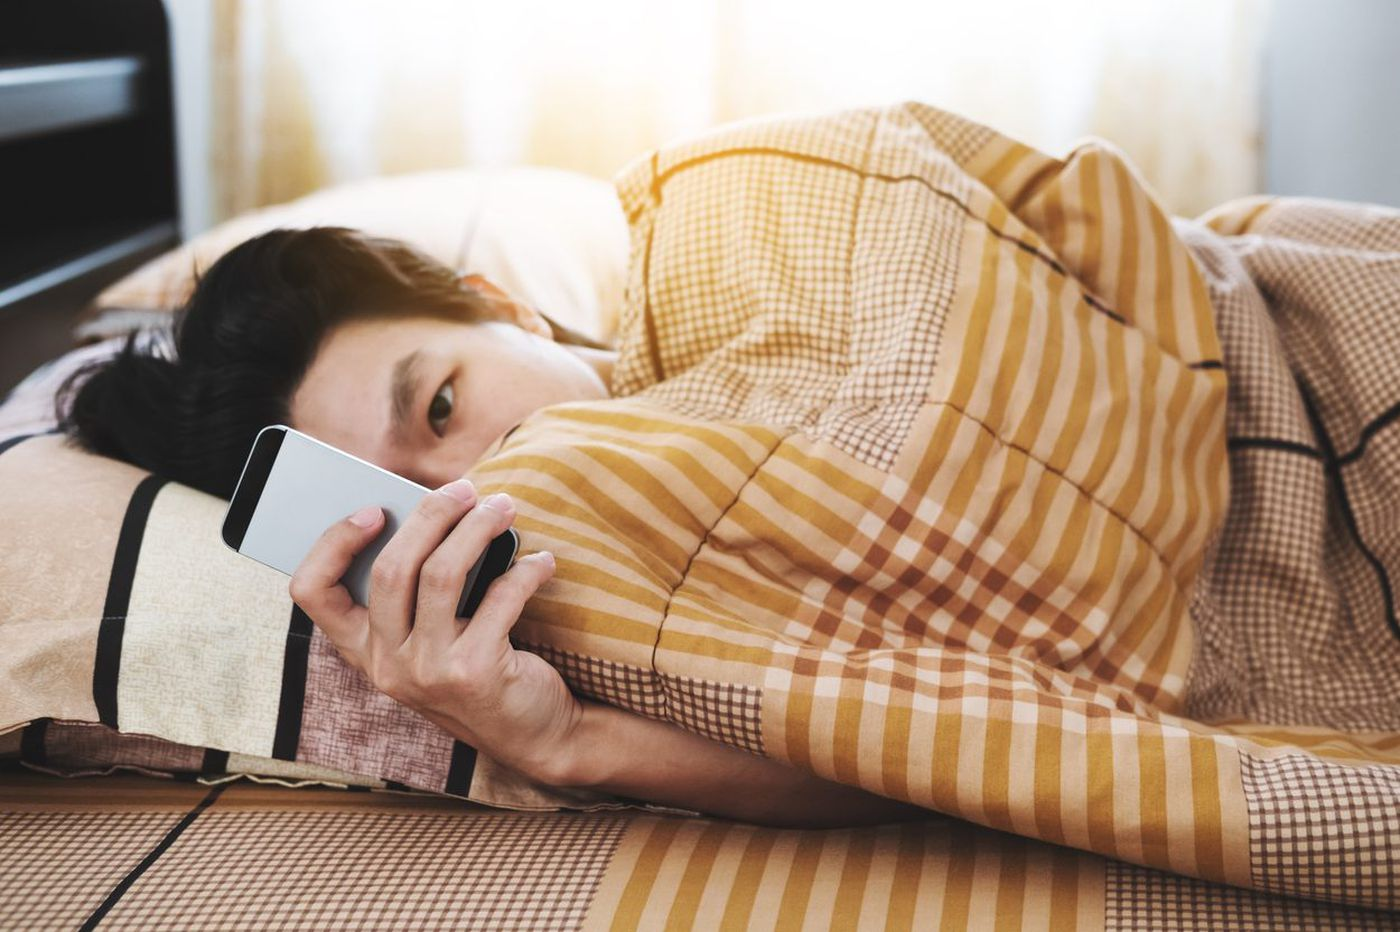 Sleep texting is real, and you may be doing it